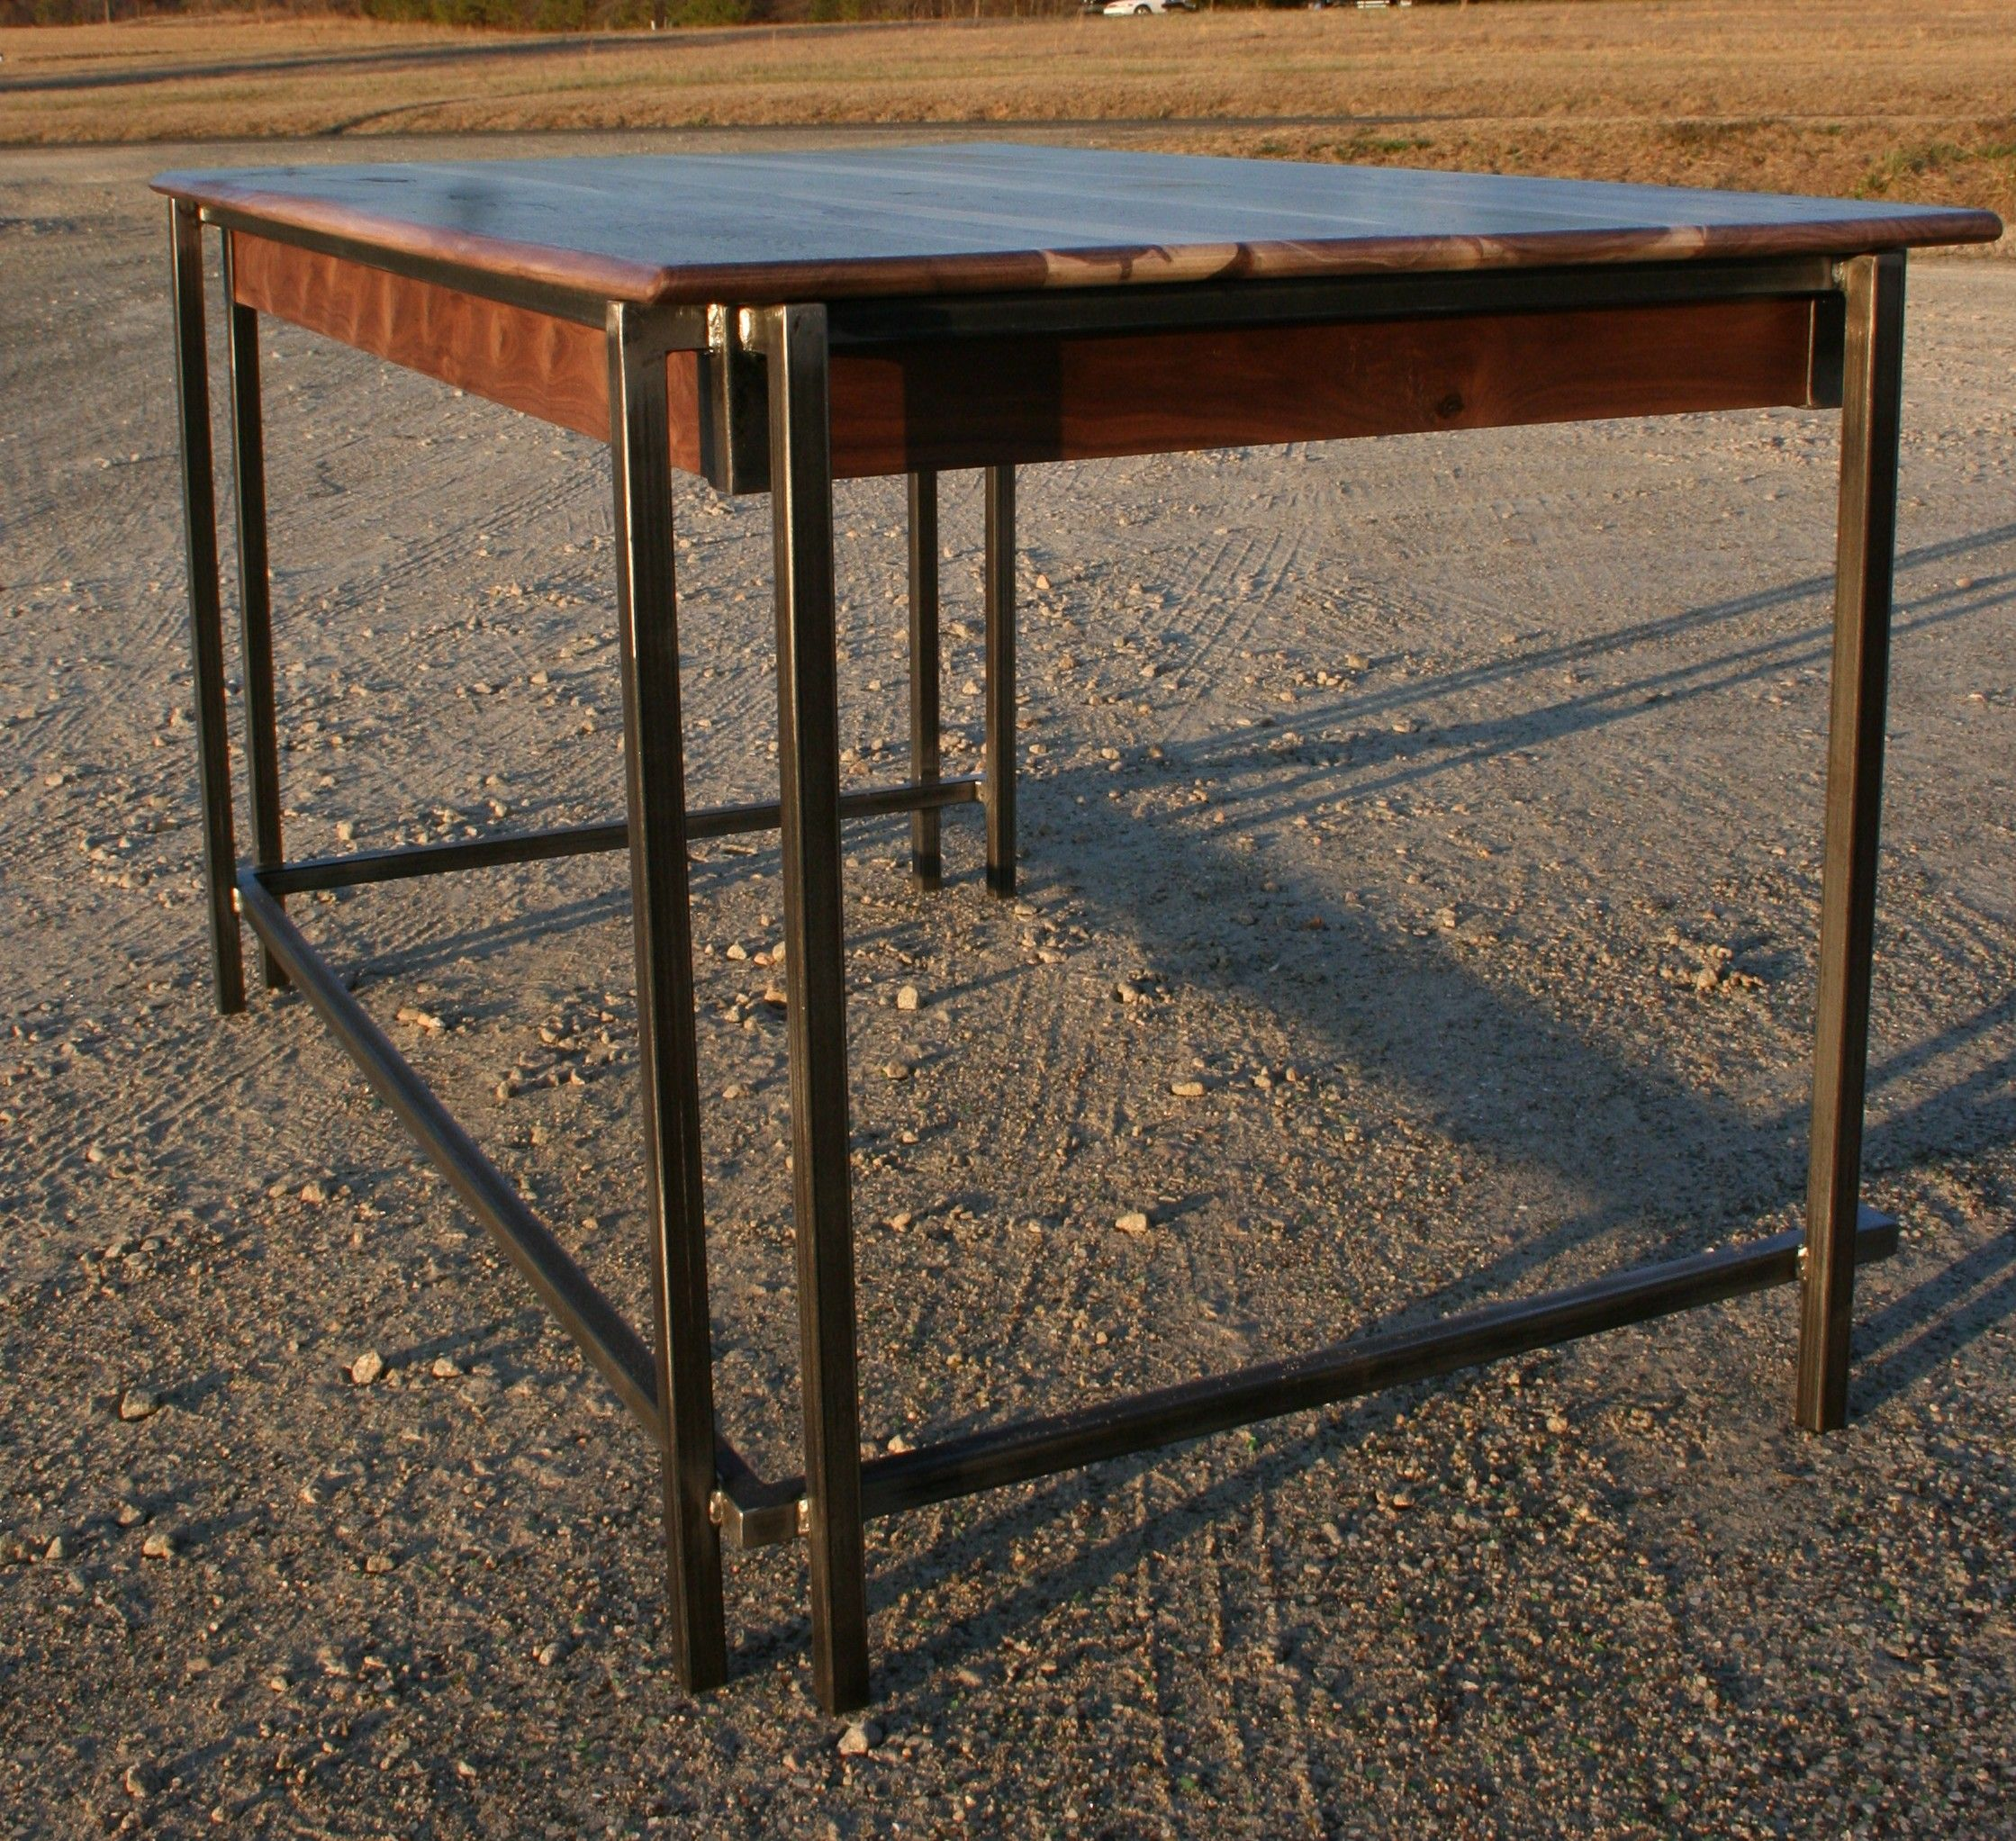 The Pilcher Desksteel Frame Topped With Black Walnut Built By